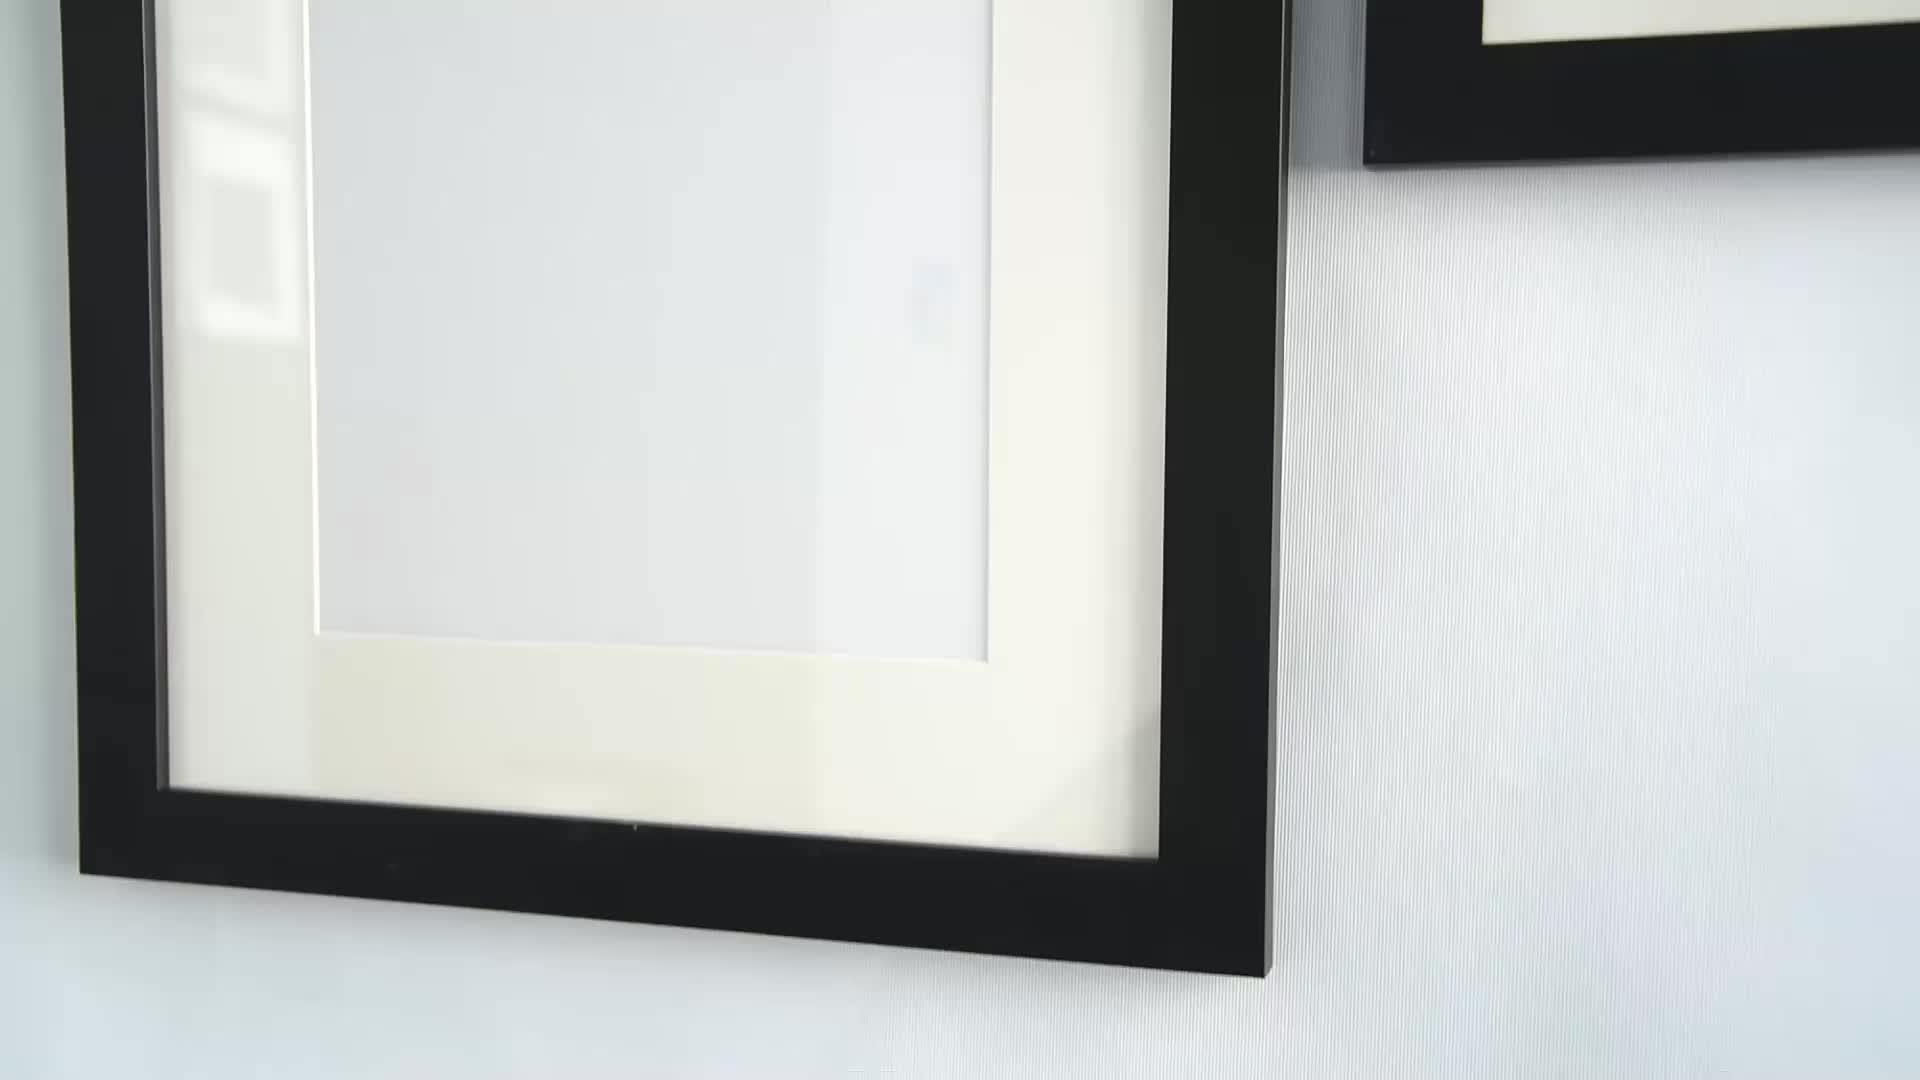 London style medium size modern wall hanging plastic black picture frame for living room decor